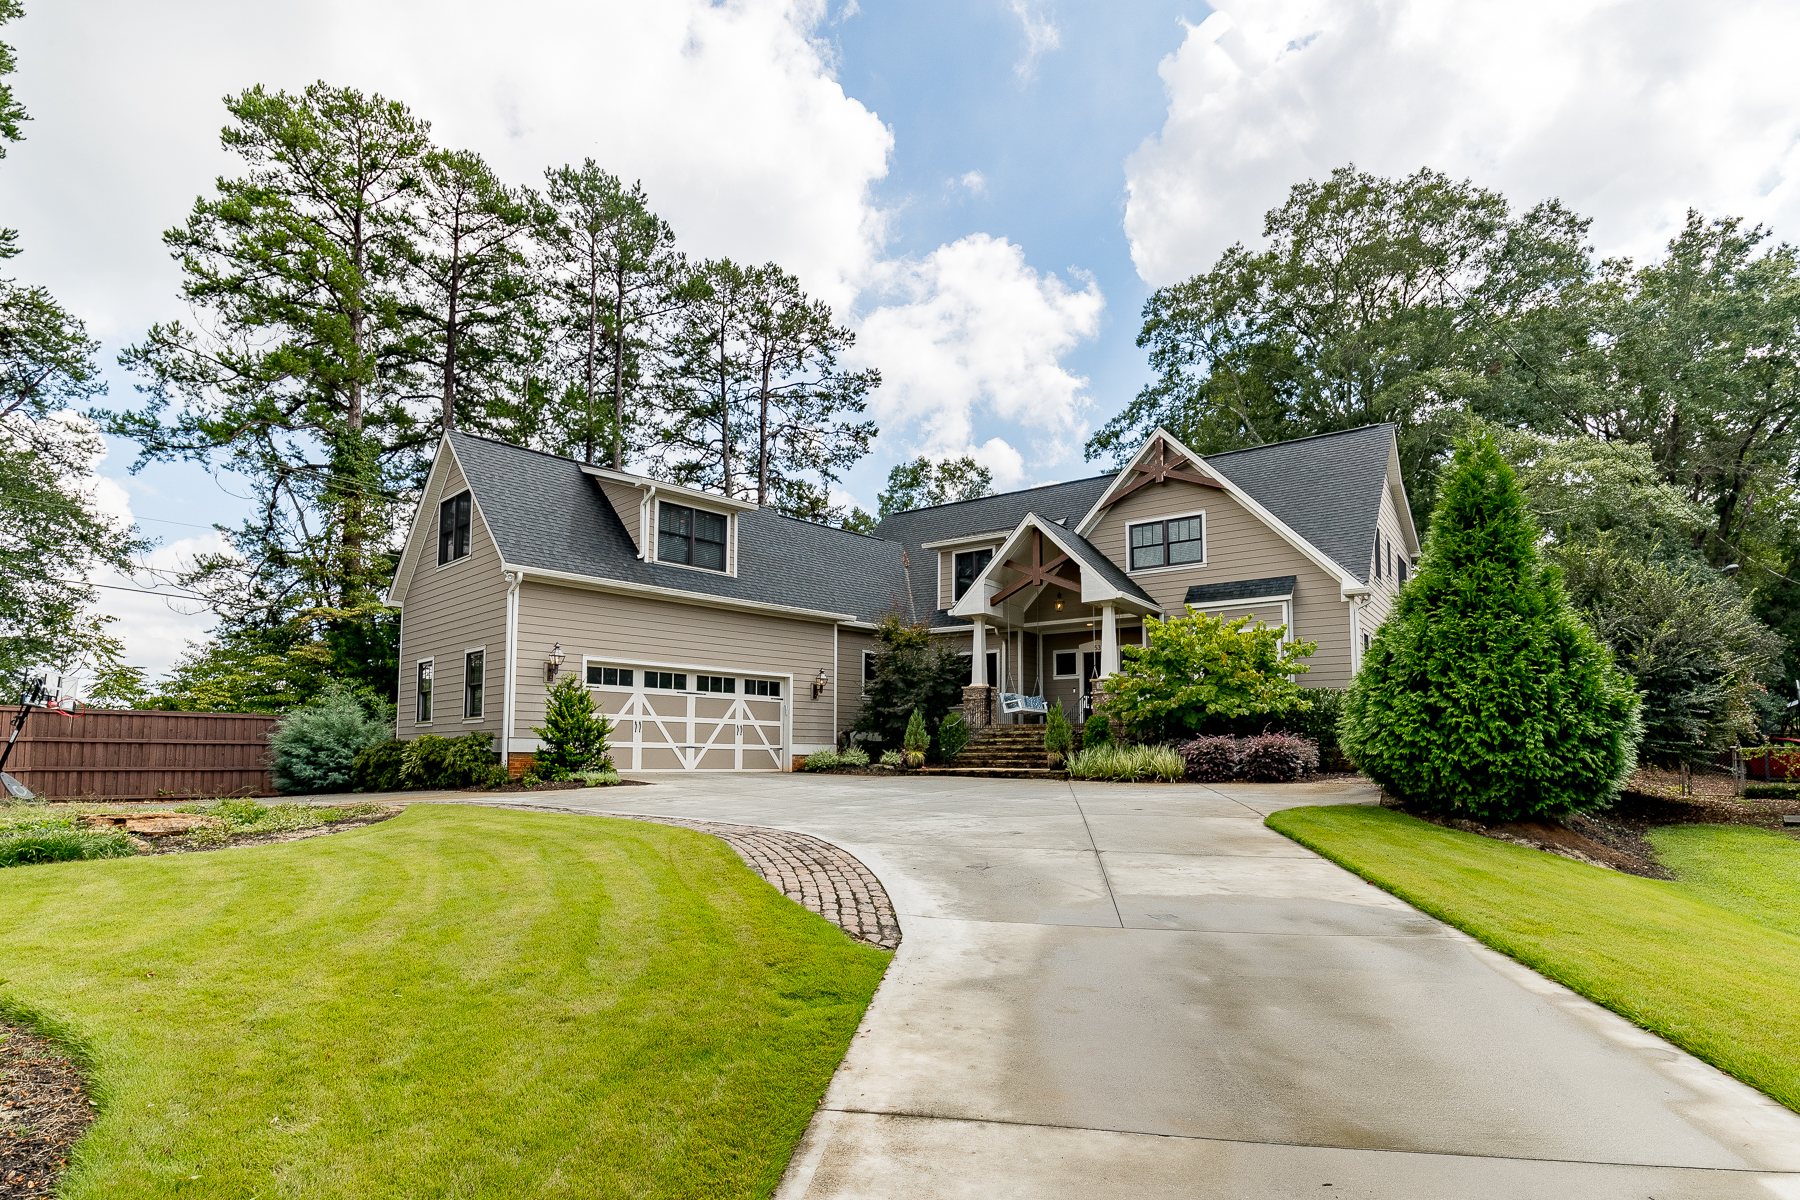 Single Family Homes for Sale at Custom Built Cleveland Forest Home 53 Partridge Lane Greenville, South Carolina 29601 United States